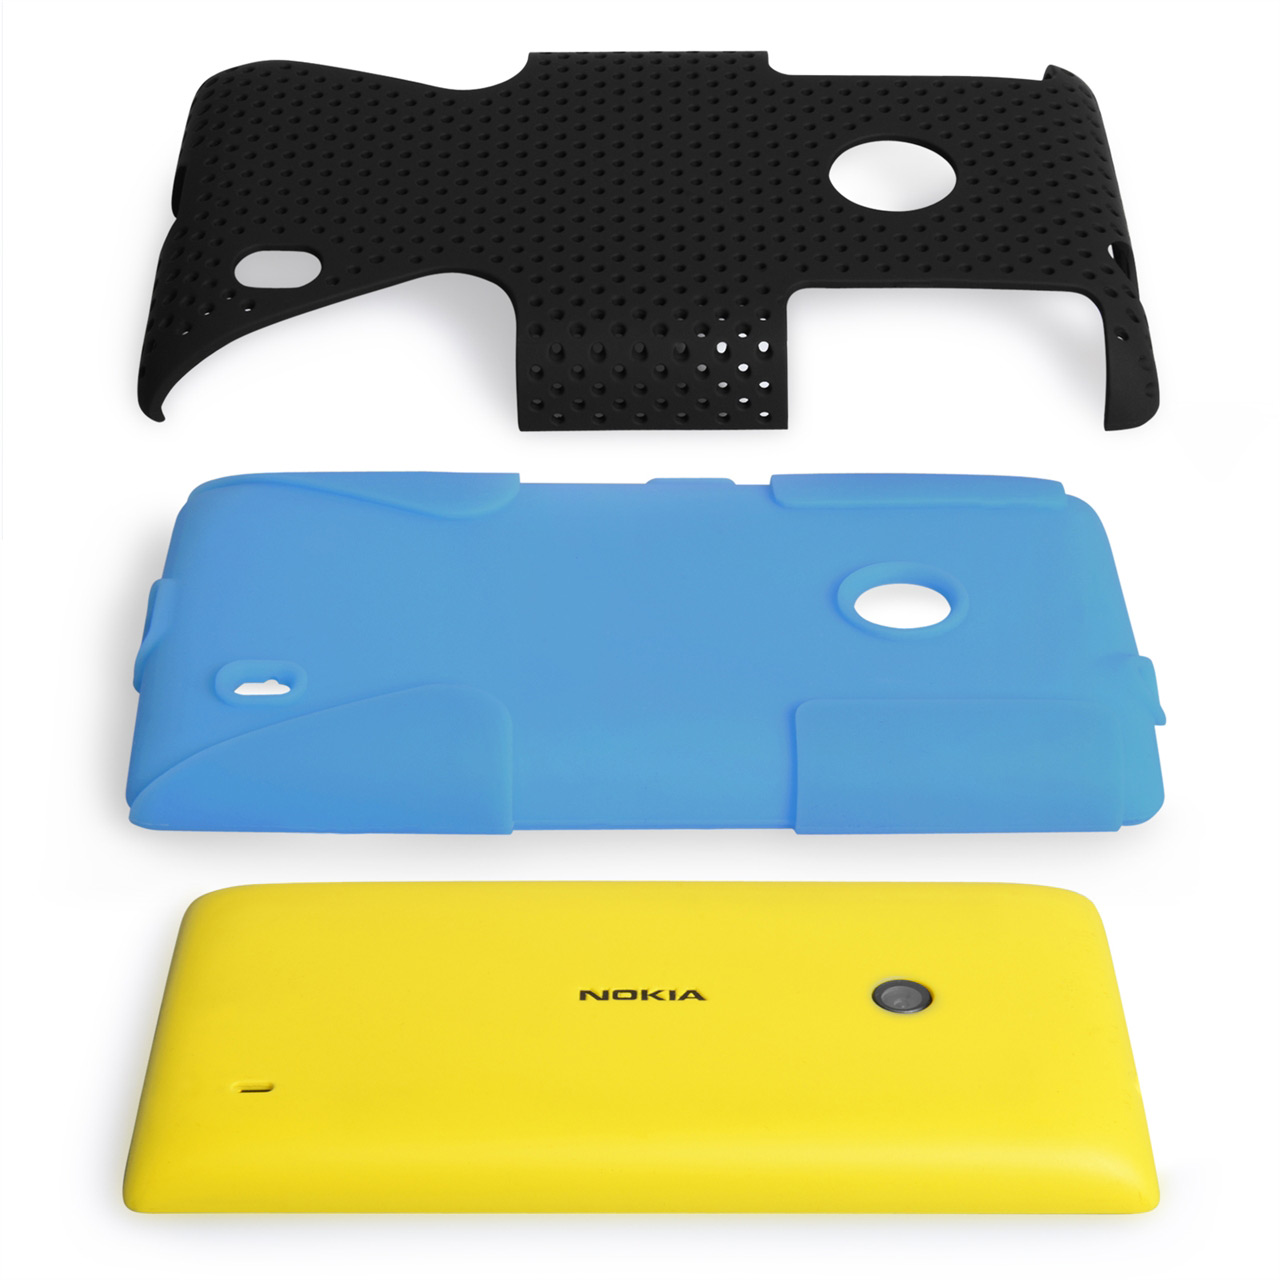 YouSave Accessories Nokia Lumia 520 Mesh Hard Case - Blue